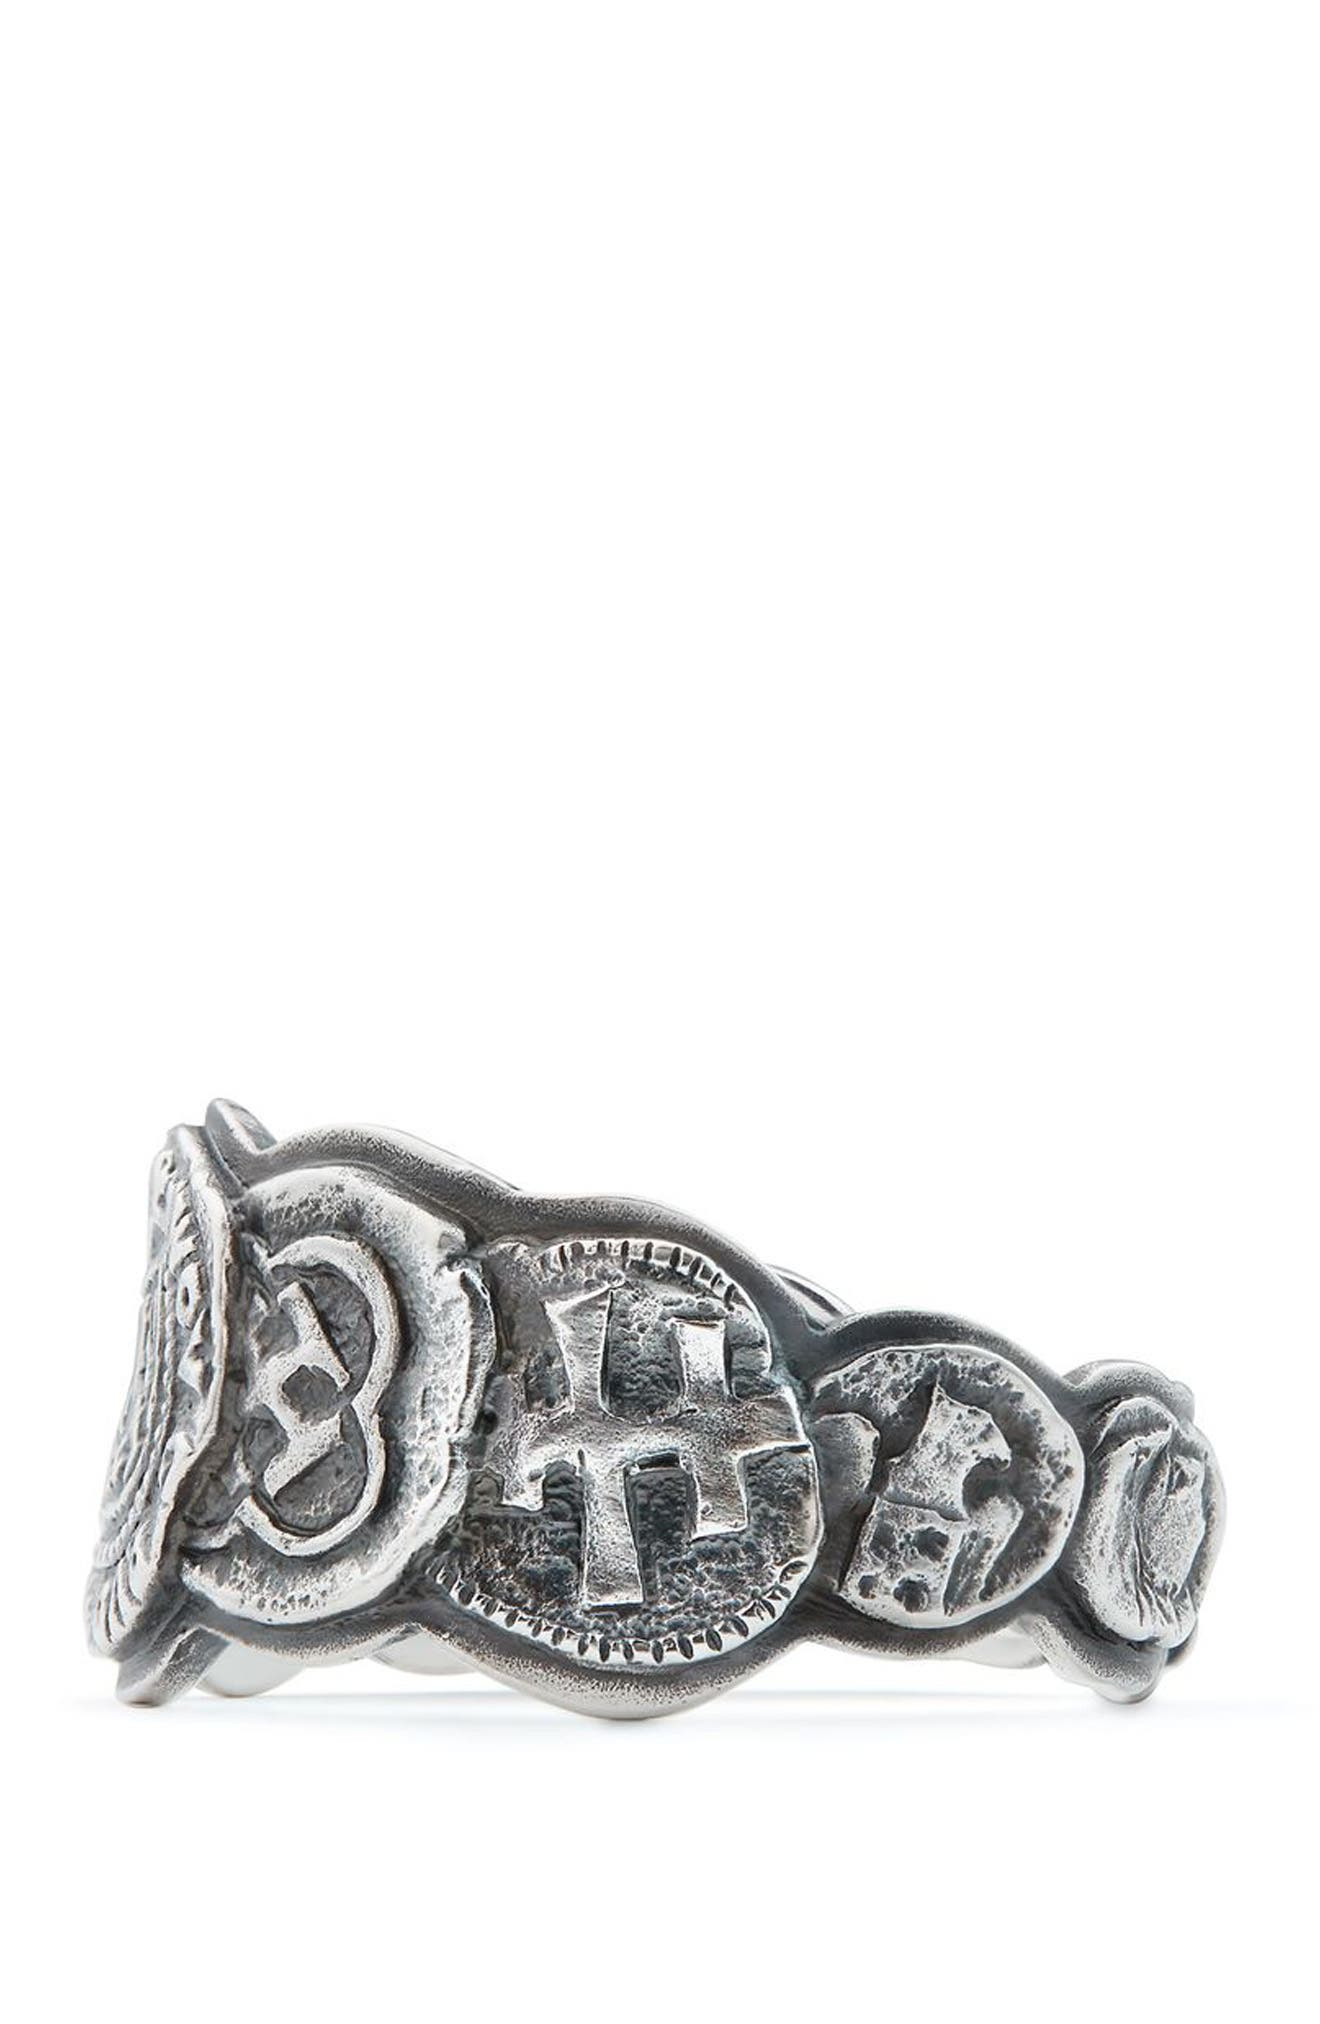 Shipwreck Coin Band Ring, 12mm,                             Alternate thumbnail 2, color,                             Silver